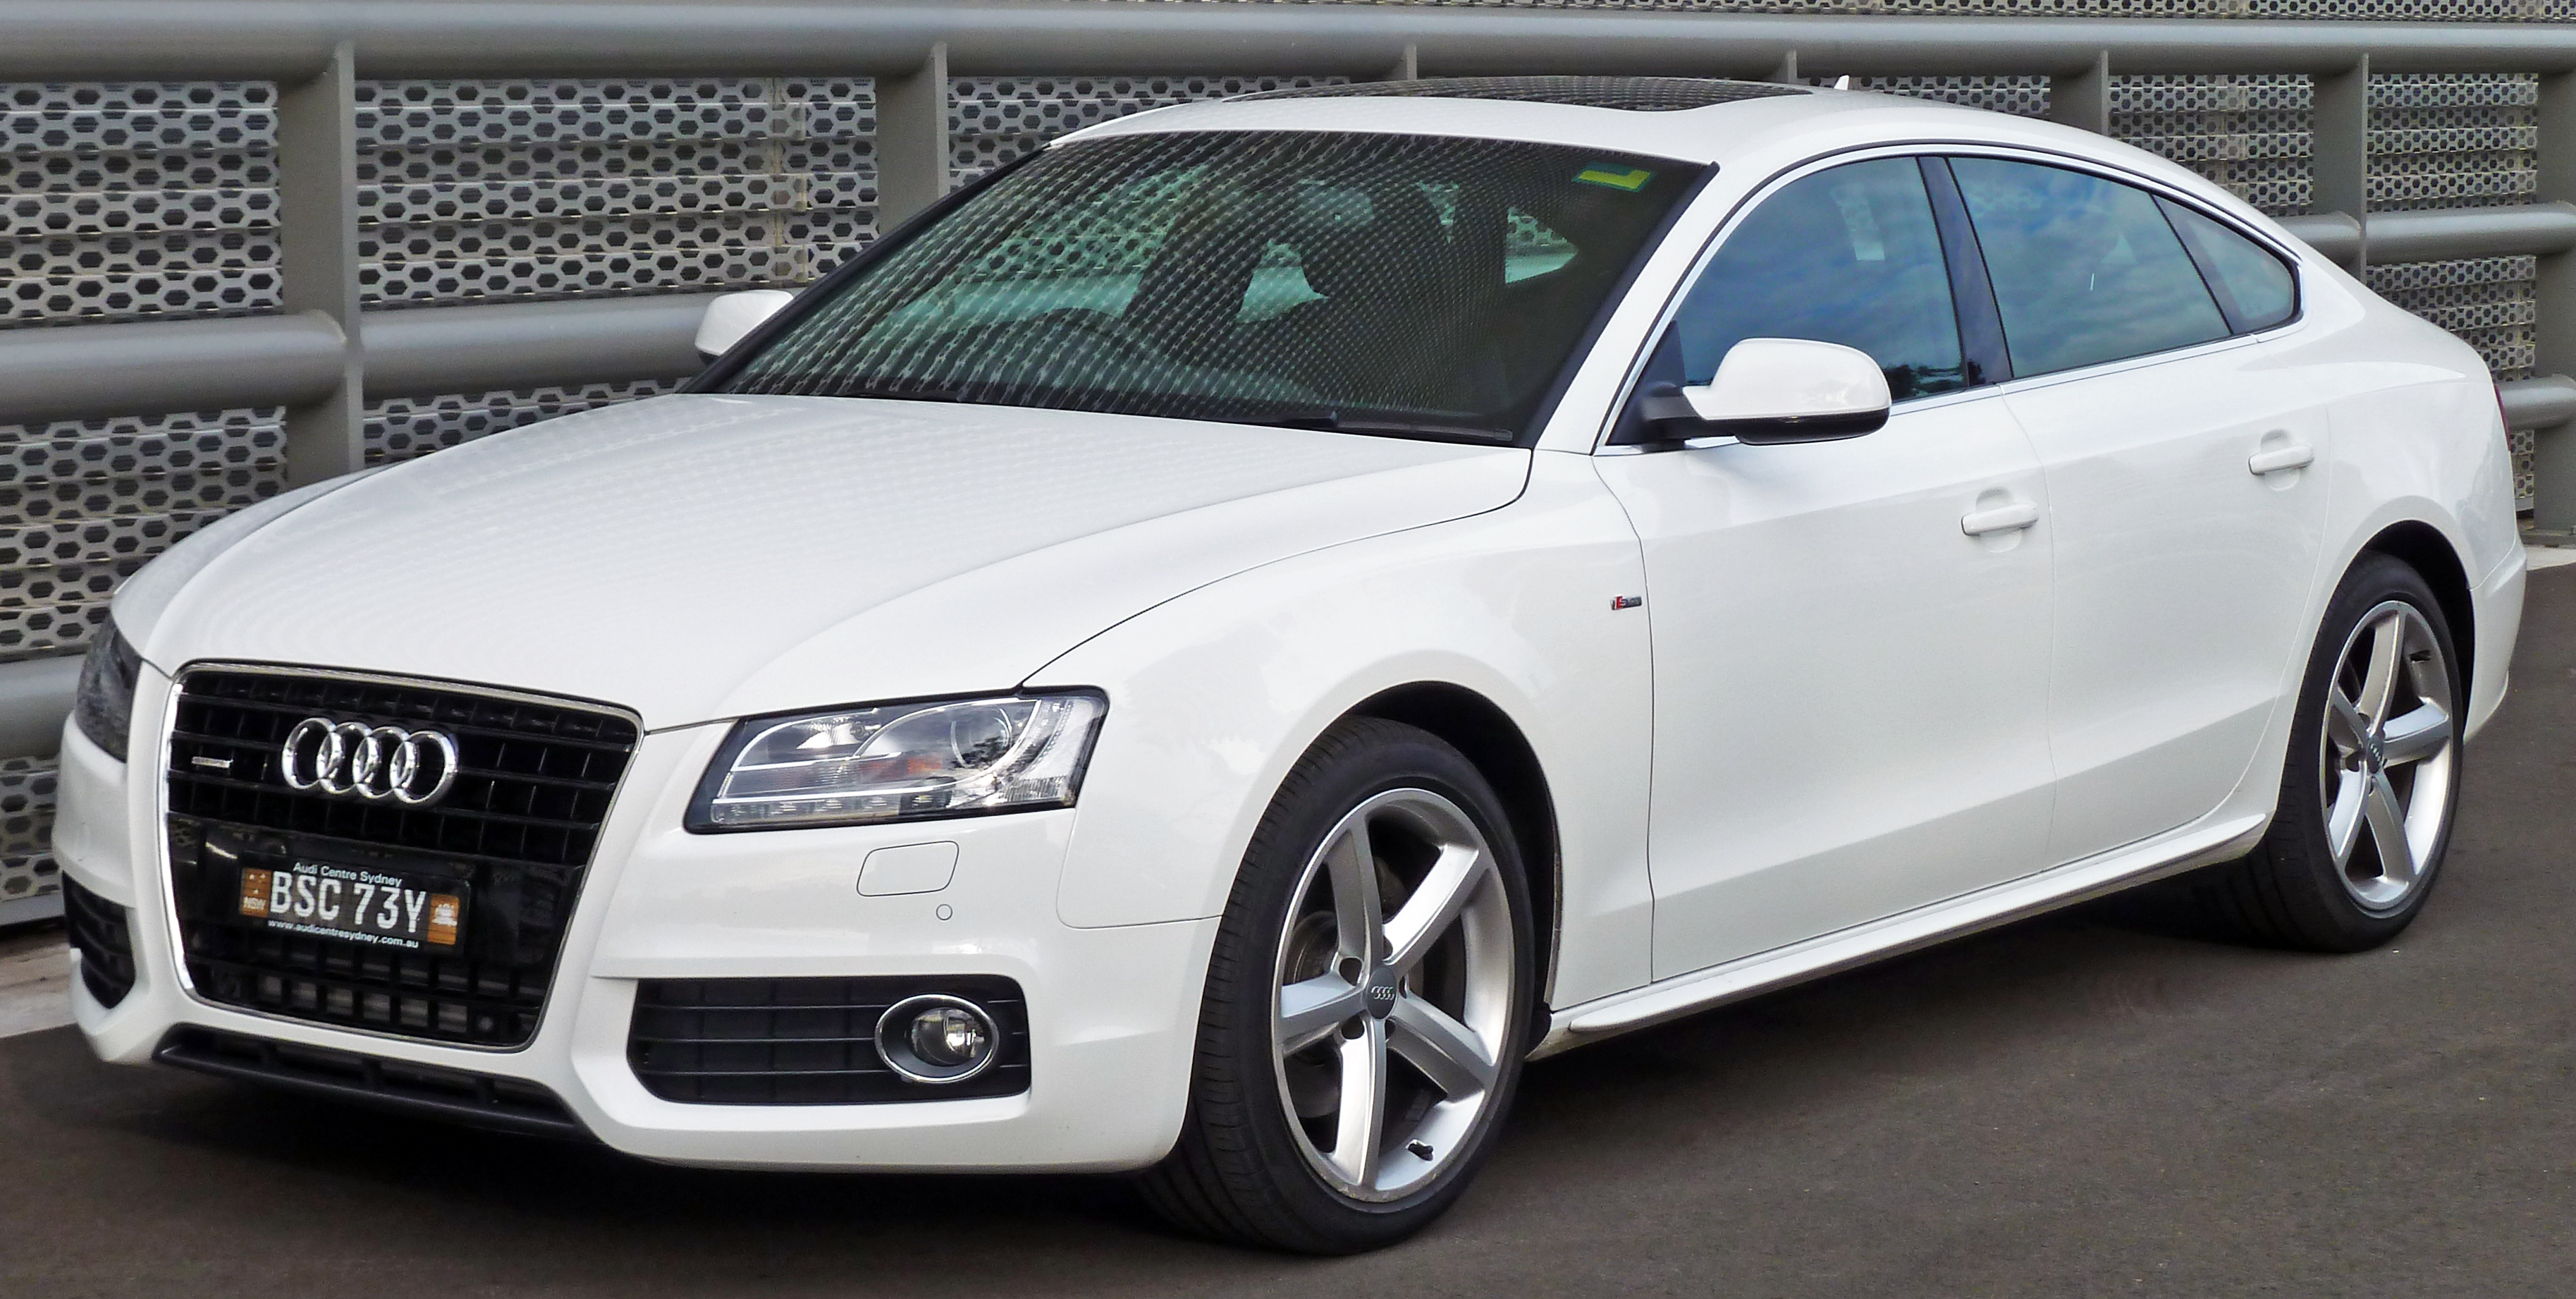 file 2010 audi a5 8t 3 0 tdi quattro sportback. Black Bedroom Furniture Sets. Home Design Ideas